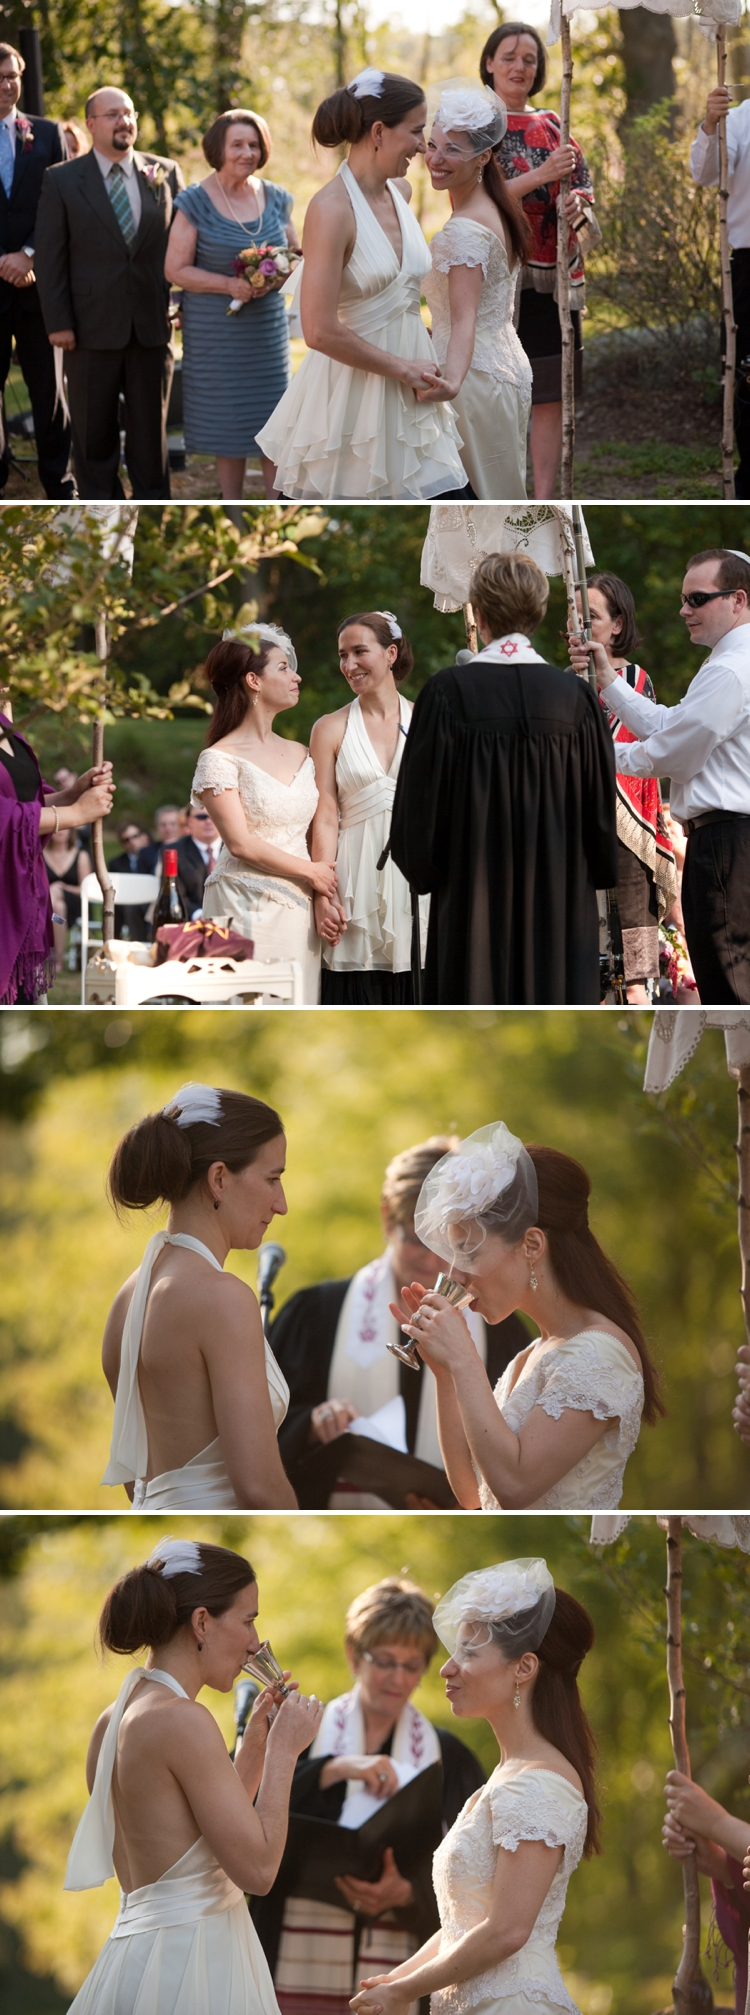 Lesbian Jewish Wedding at The Old Manse, Concord